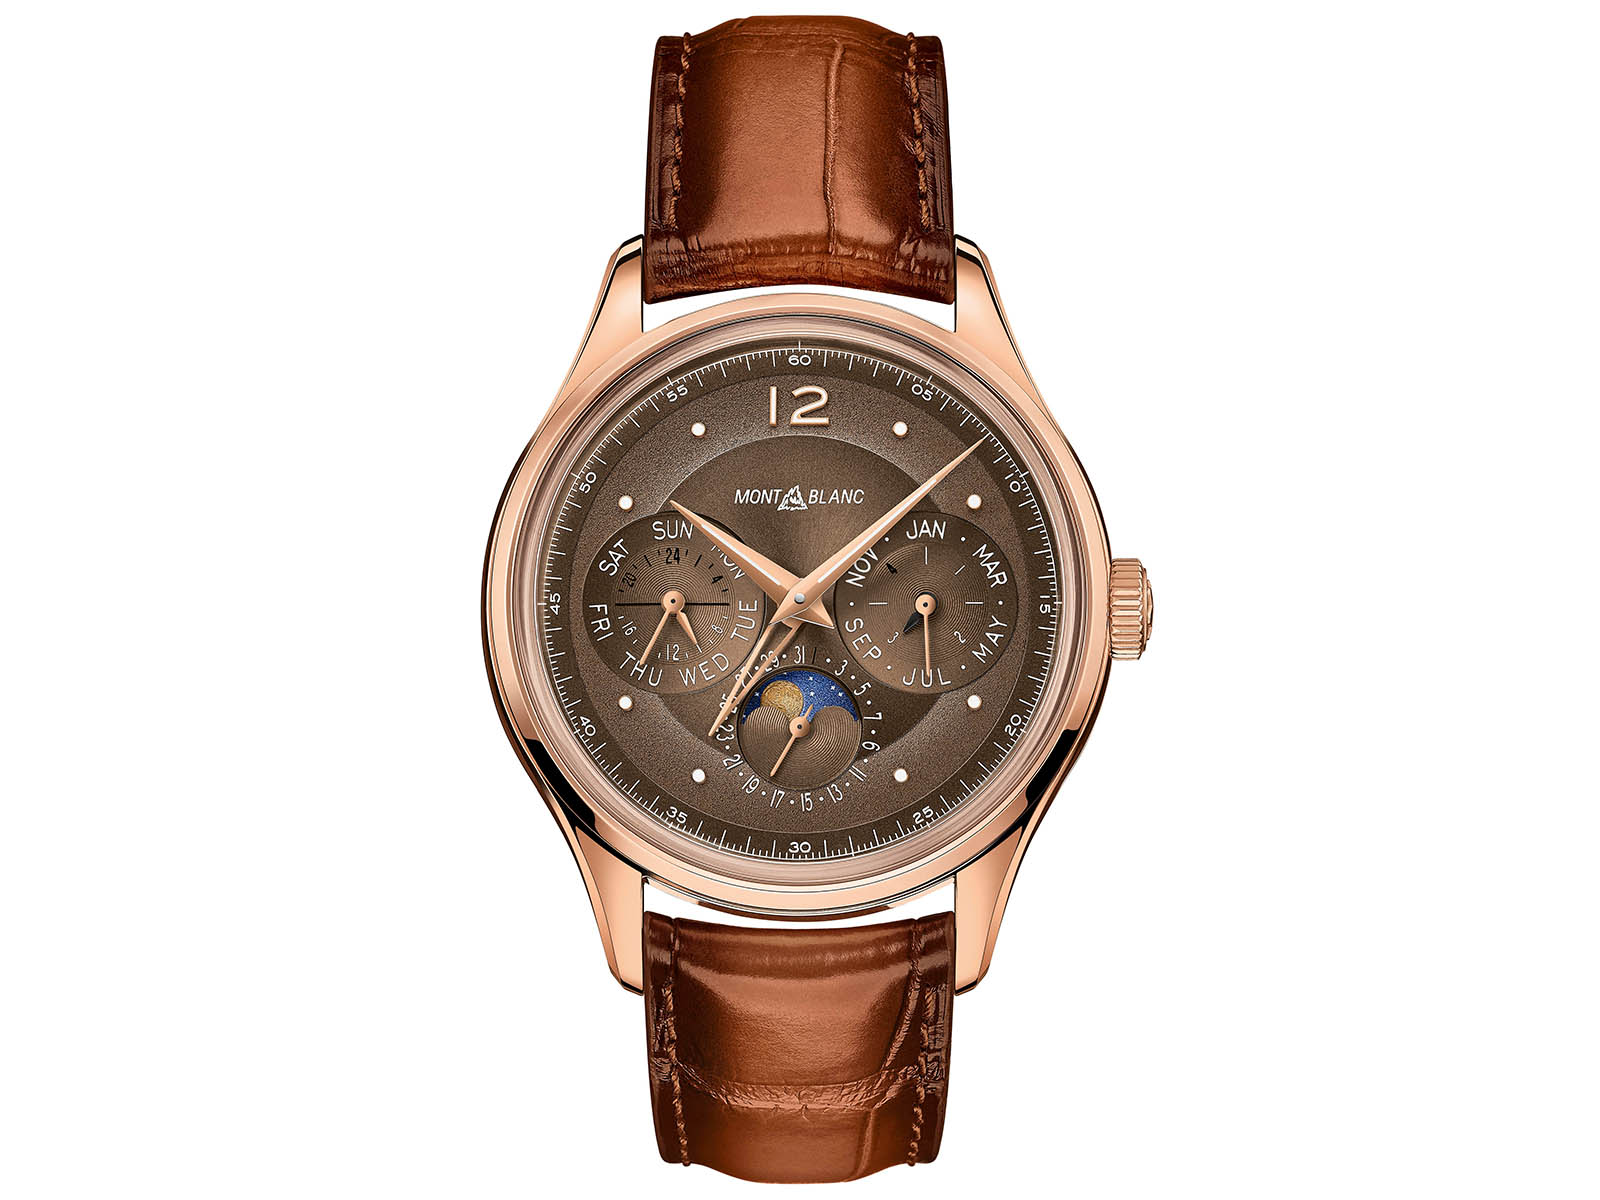 128669-montblanc-heritage-manufacture-perpetual-calendar-limited-edition-100-7.jpg